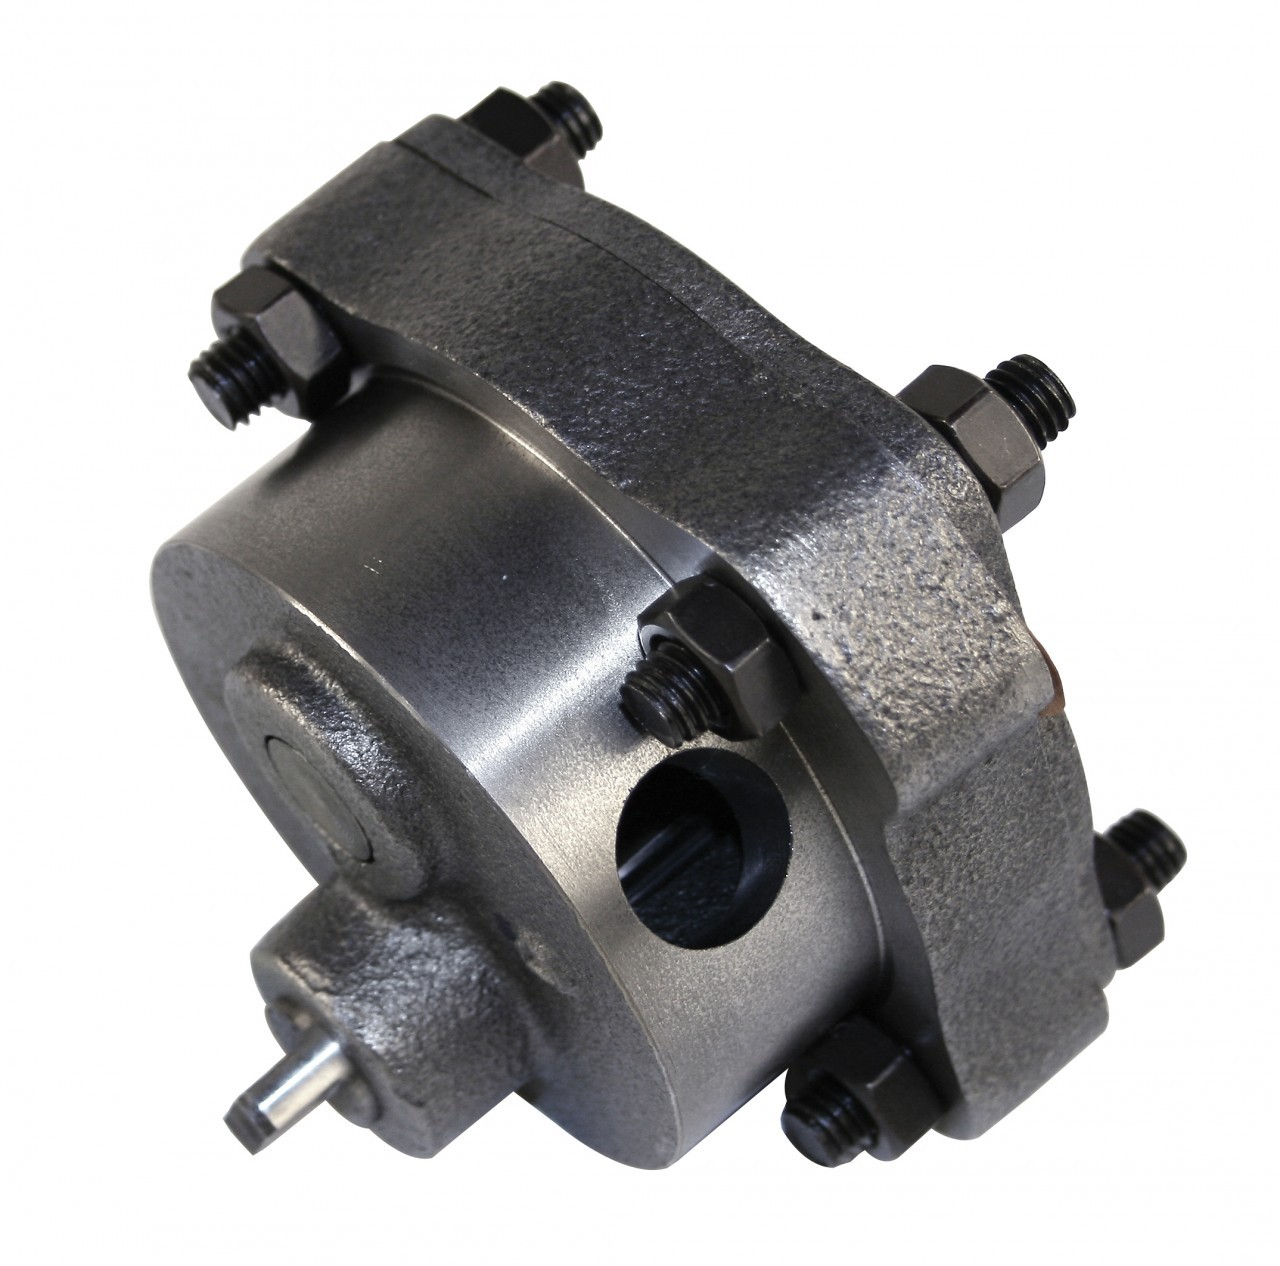 hight resolution of melling oil pump type 1 vw beetle empi 31 2955